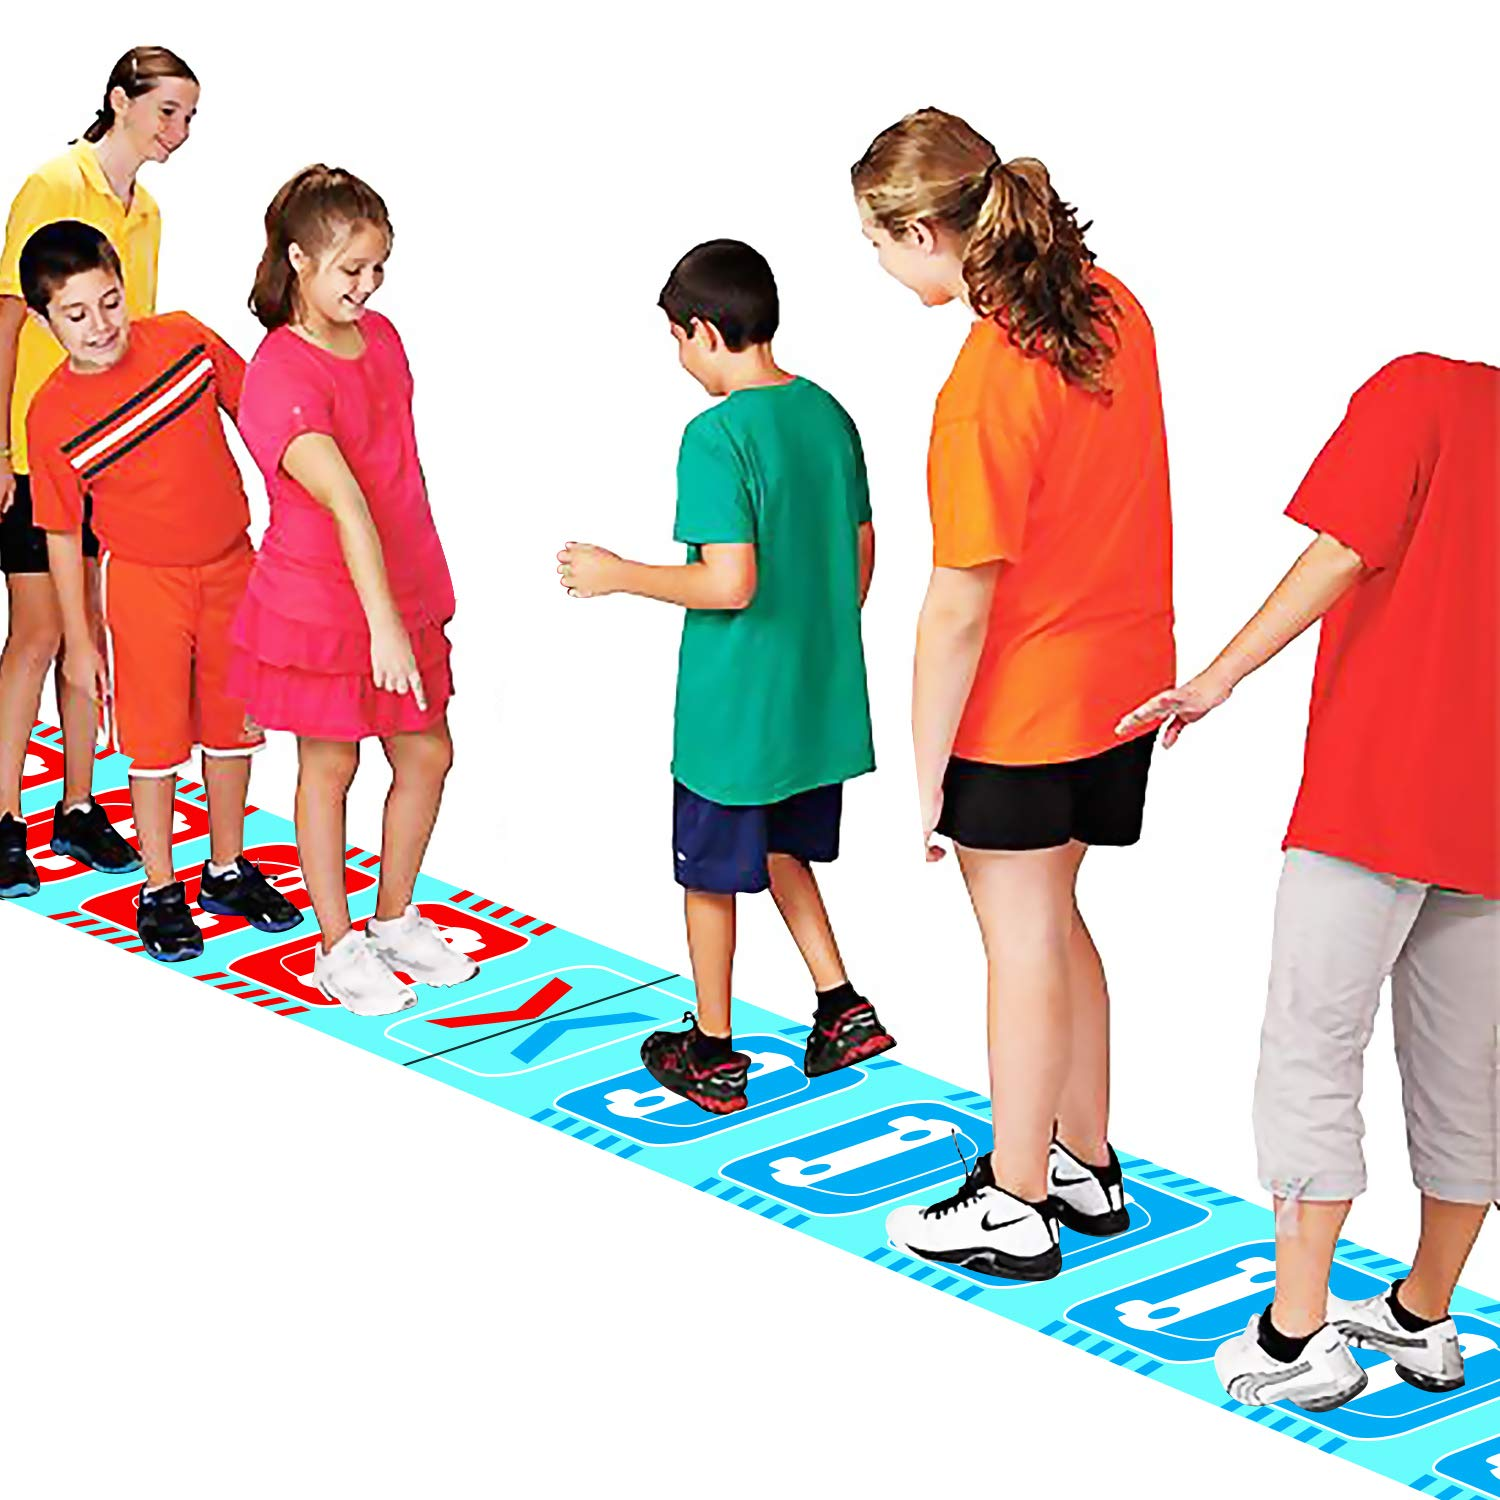 KINDEN Traffic Jam Group Games Team Challenge Class Training Course Puzzle Game for Field Day Carnival by KINDEN